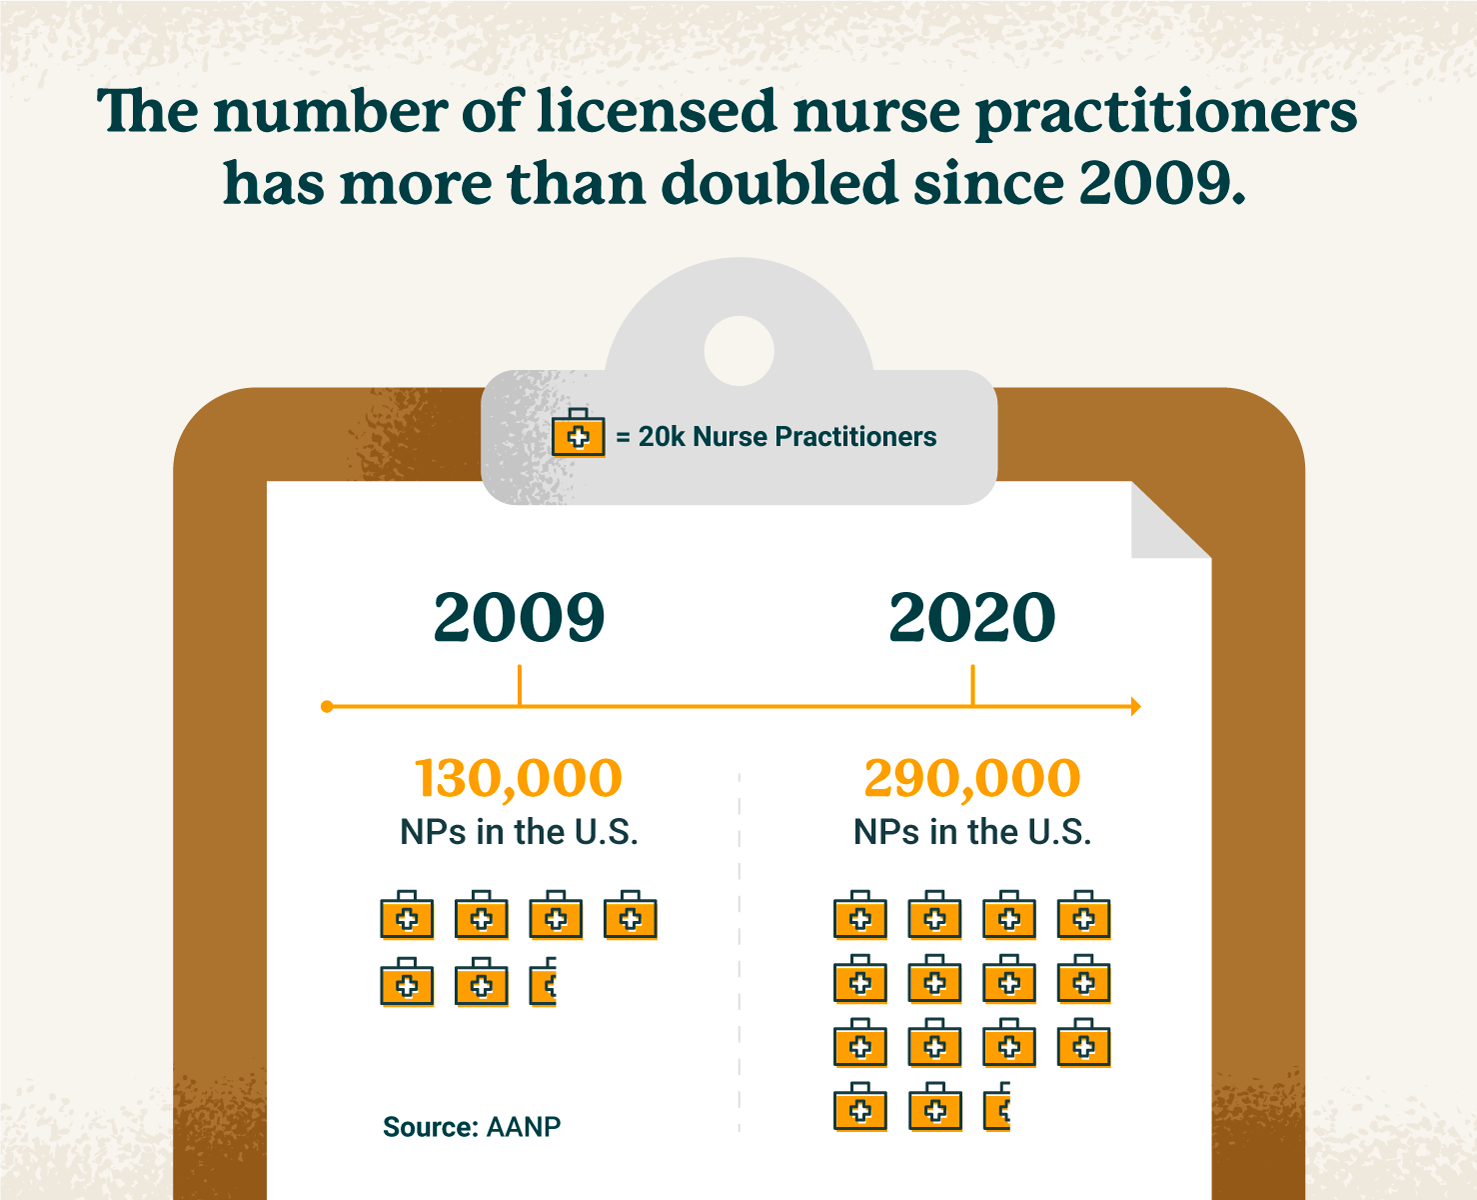 visual showing number of NPs has more than doubled since 2009